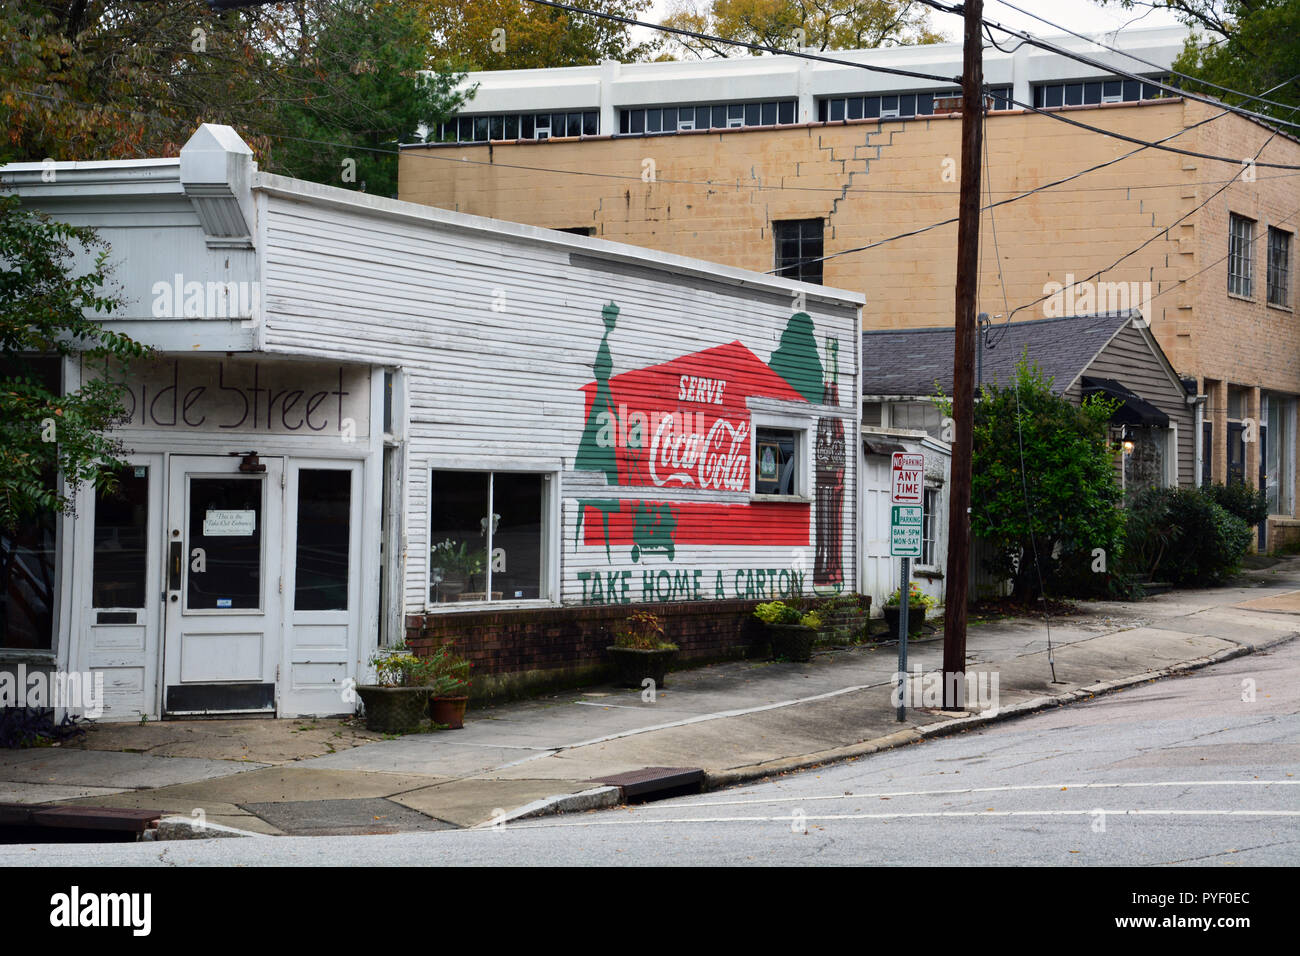 A classic sign for Coca Cola on the side of an old corner store in the historic Oakwood neighborhood of Raleigh North Carolina. - Stock Image